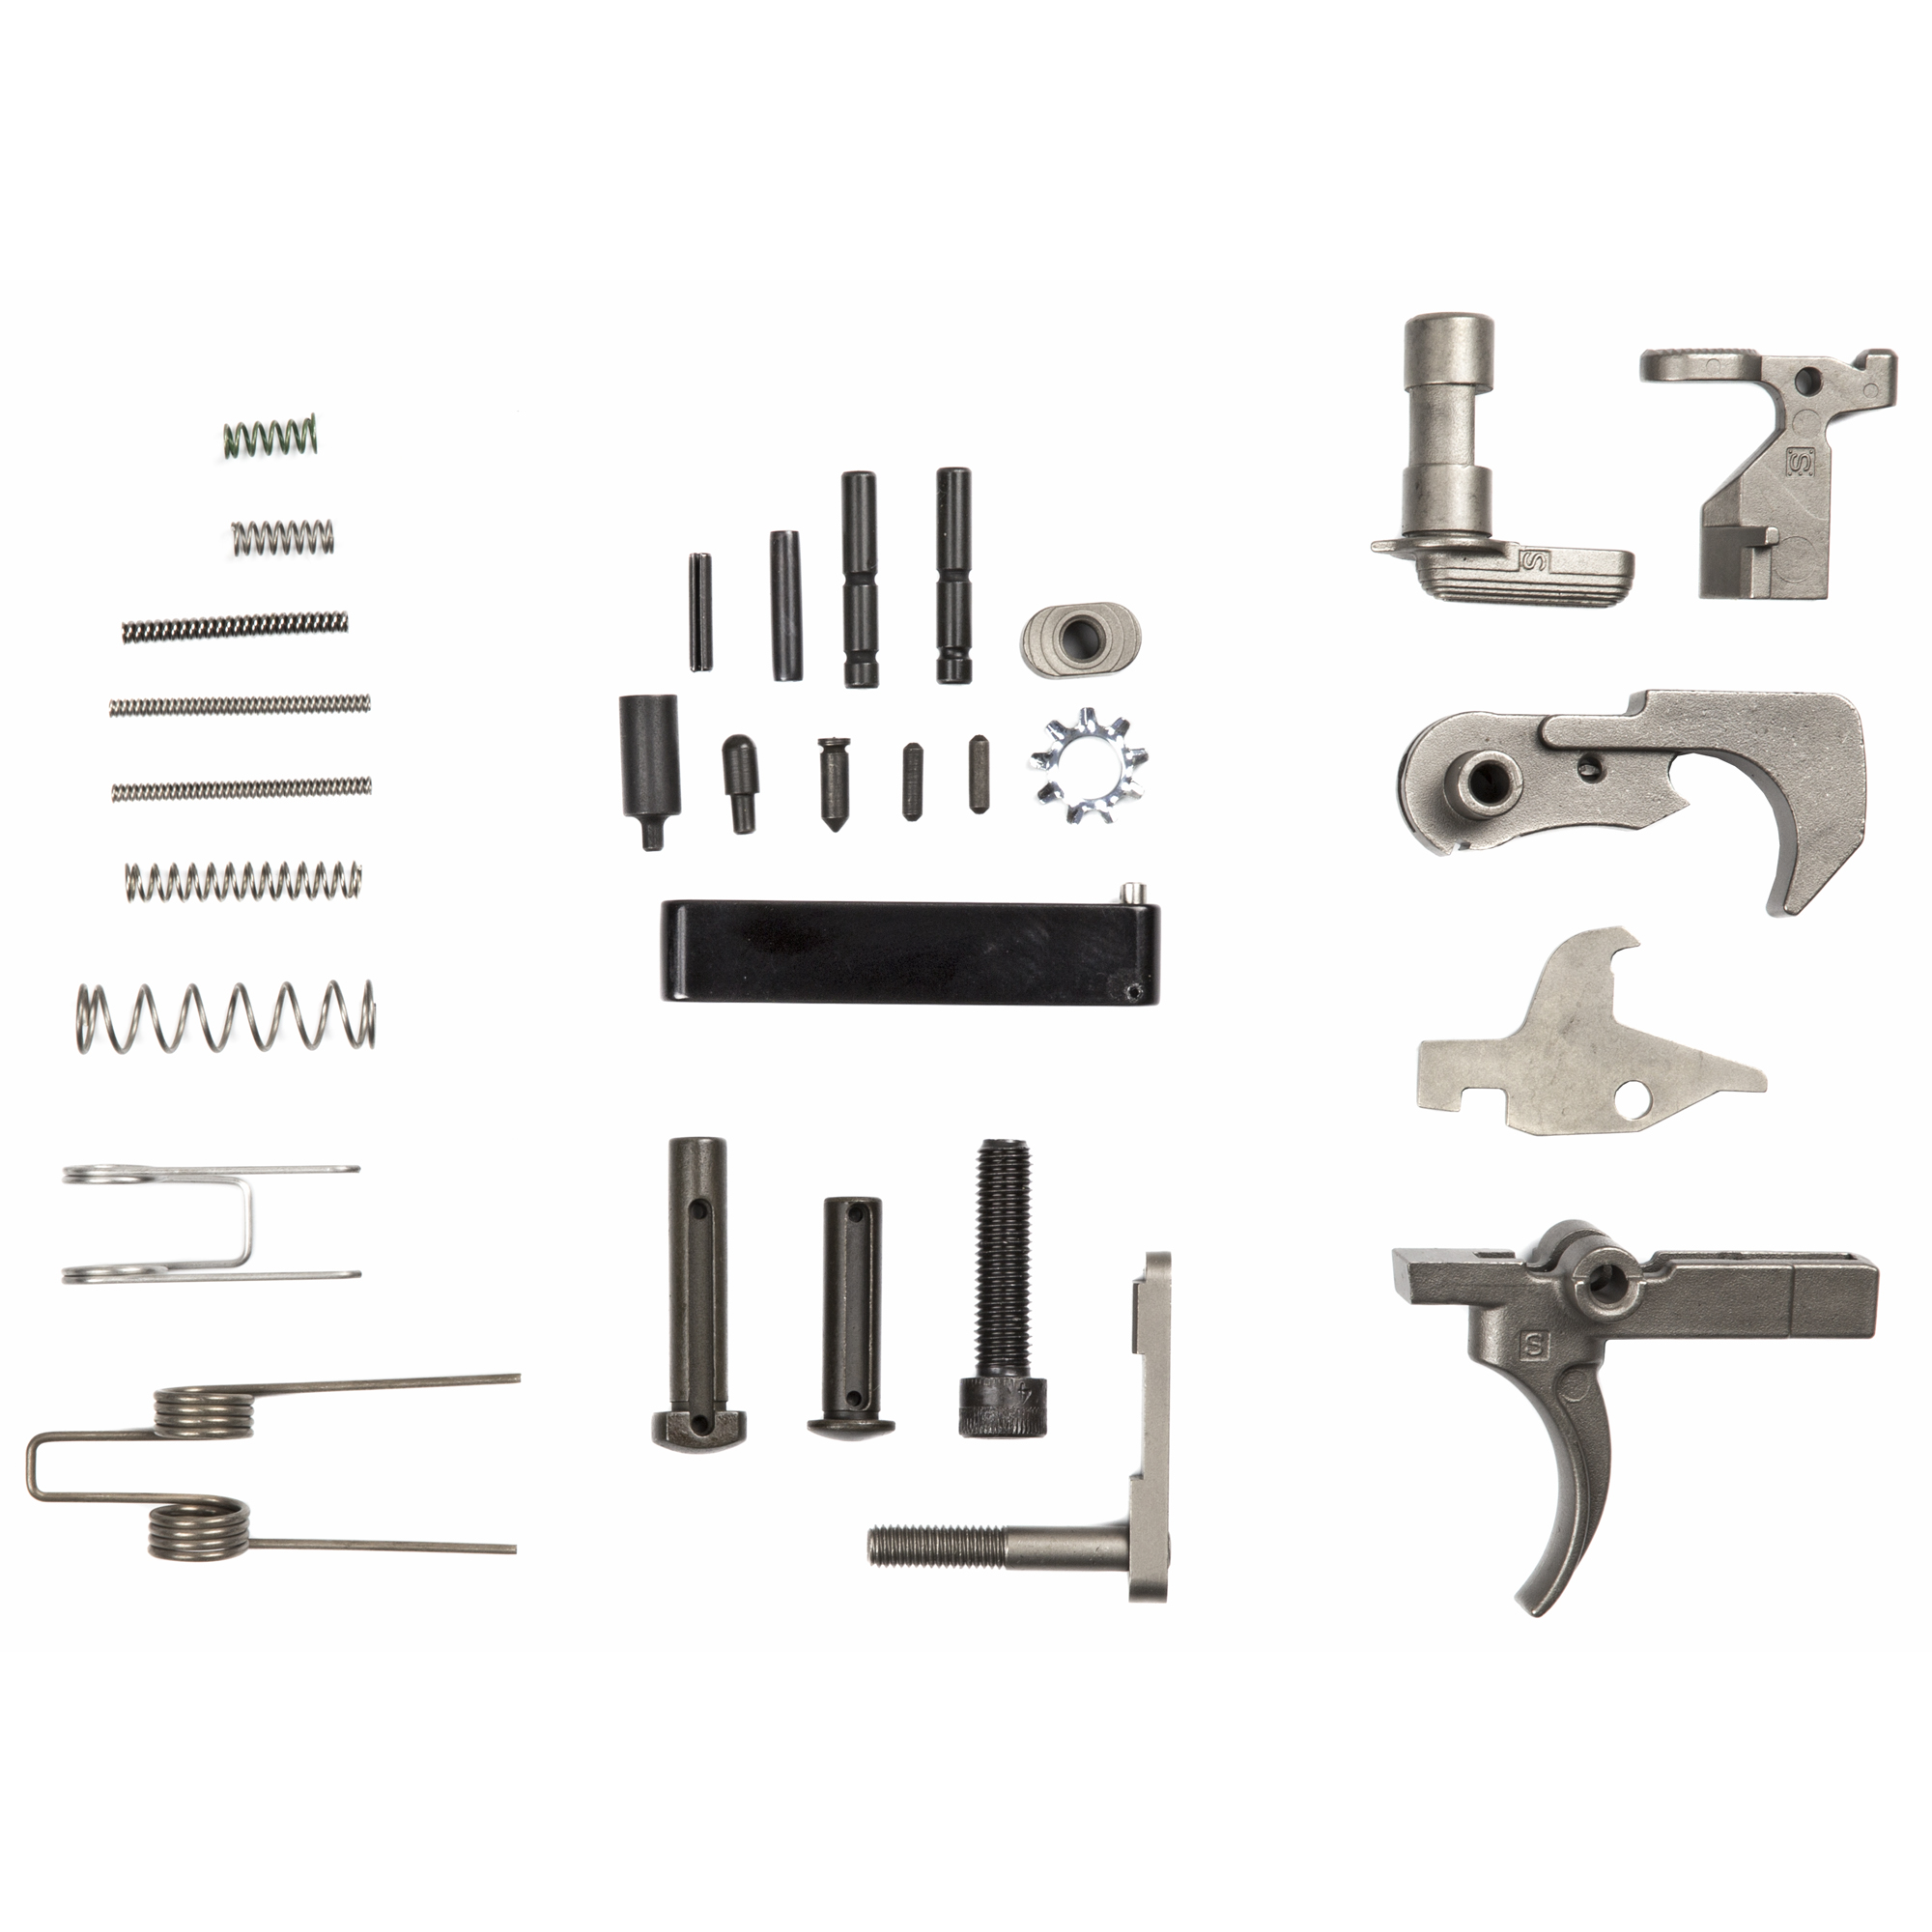 """Lower Parts Kit with NiB-X hammer"""" trigger"""" disconnect"""" bolt catch"""" mag catch"""" mag catch button"""" and safety selector. Kit includes Front Pivot Pin"""" Rear Takedown Pin"""" Trigger Guard Assembly and all necessary pins"""" detents and springs."""